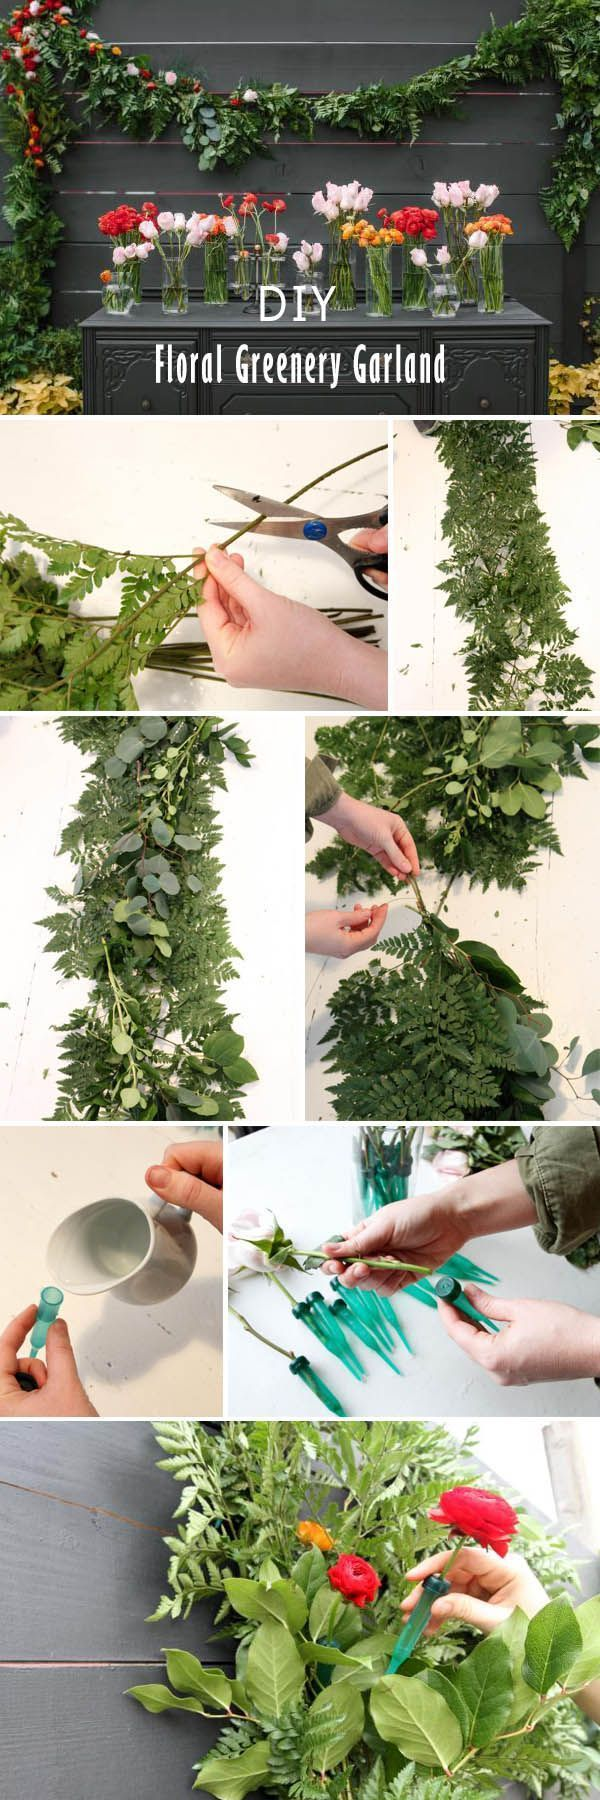 DIY floral greenery garland for weddings   Look for other great tips at www.pinterest.com/laurenweds/wedding-flowers